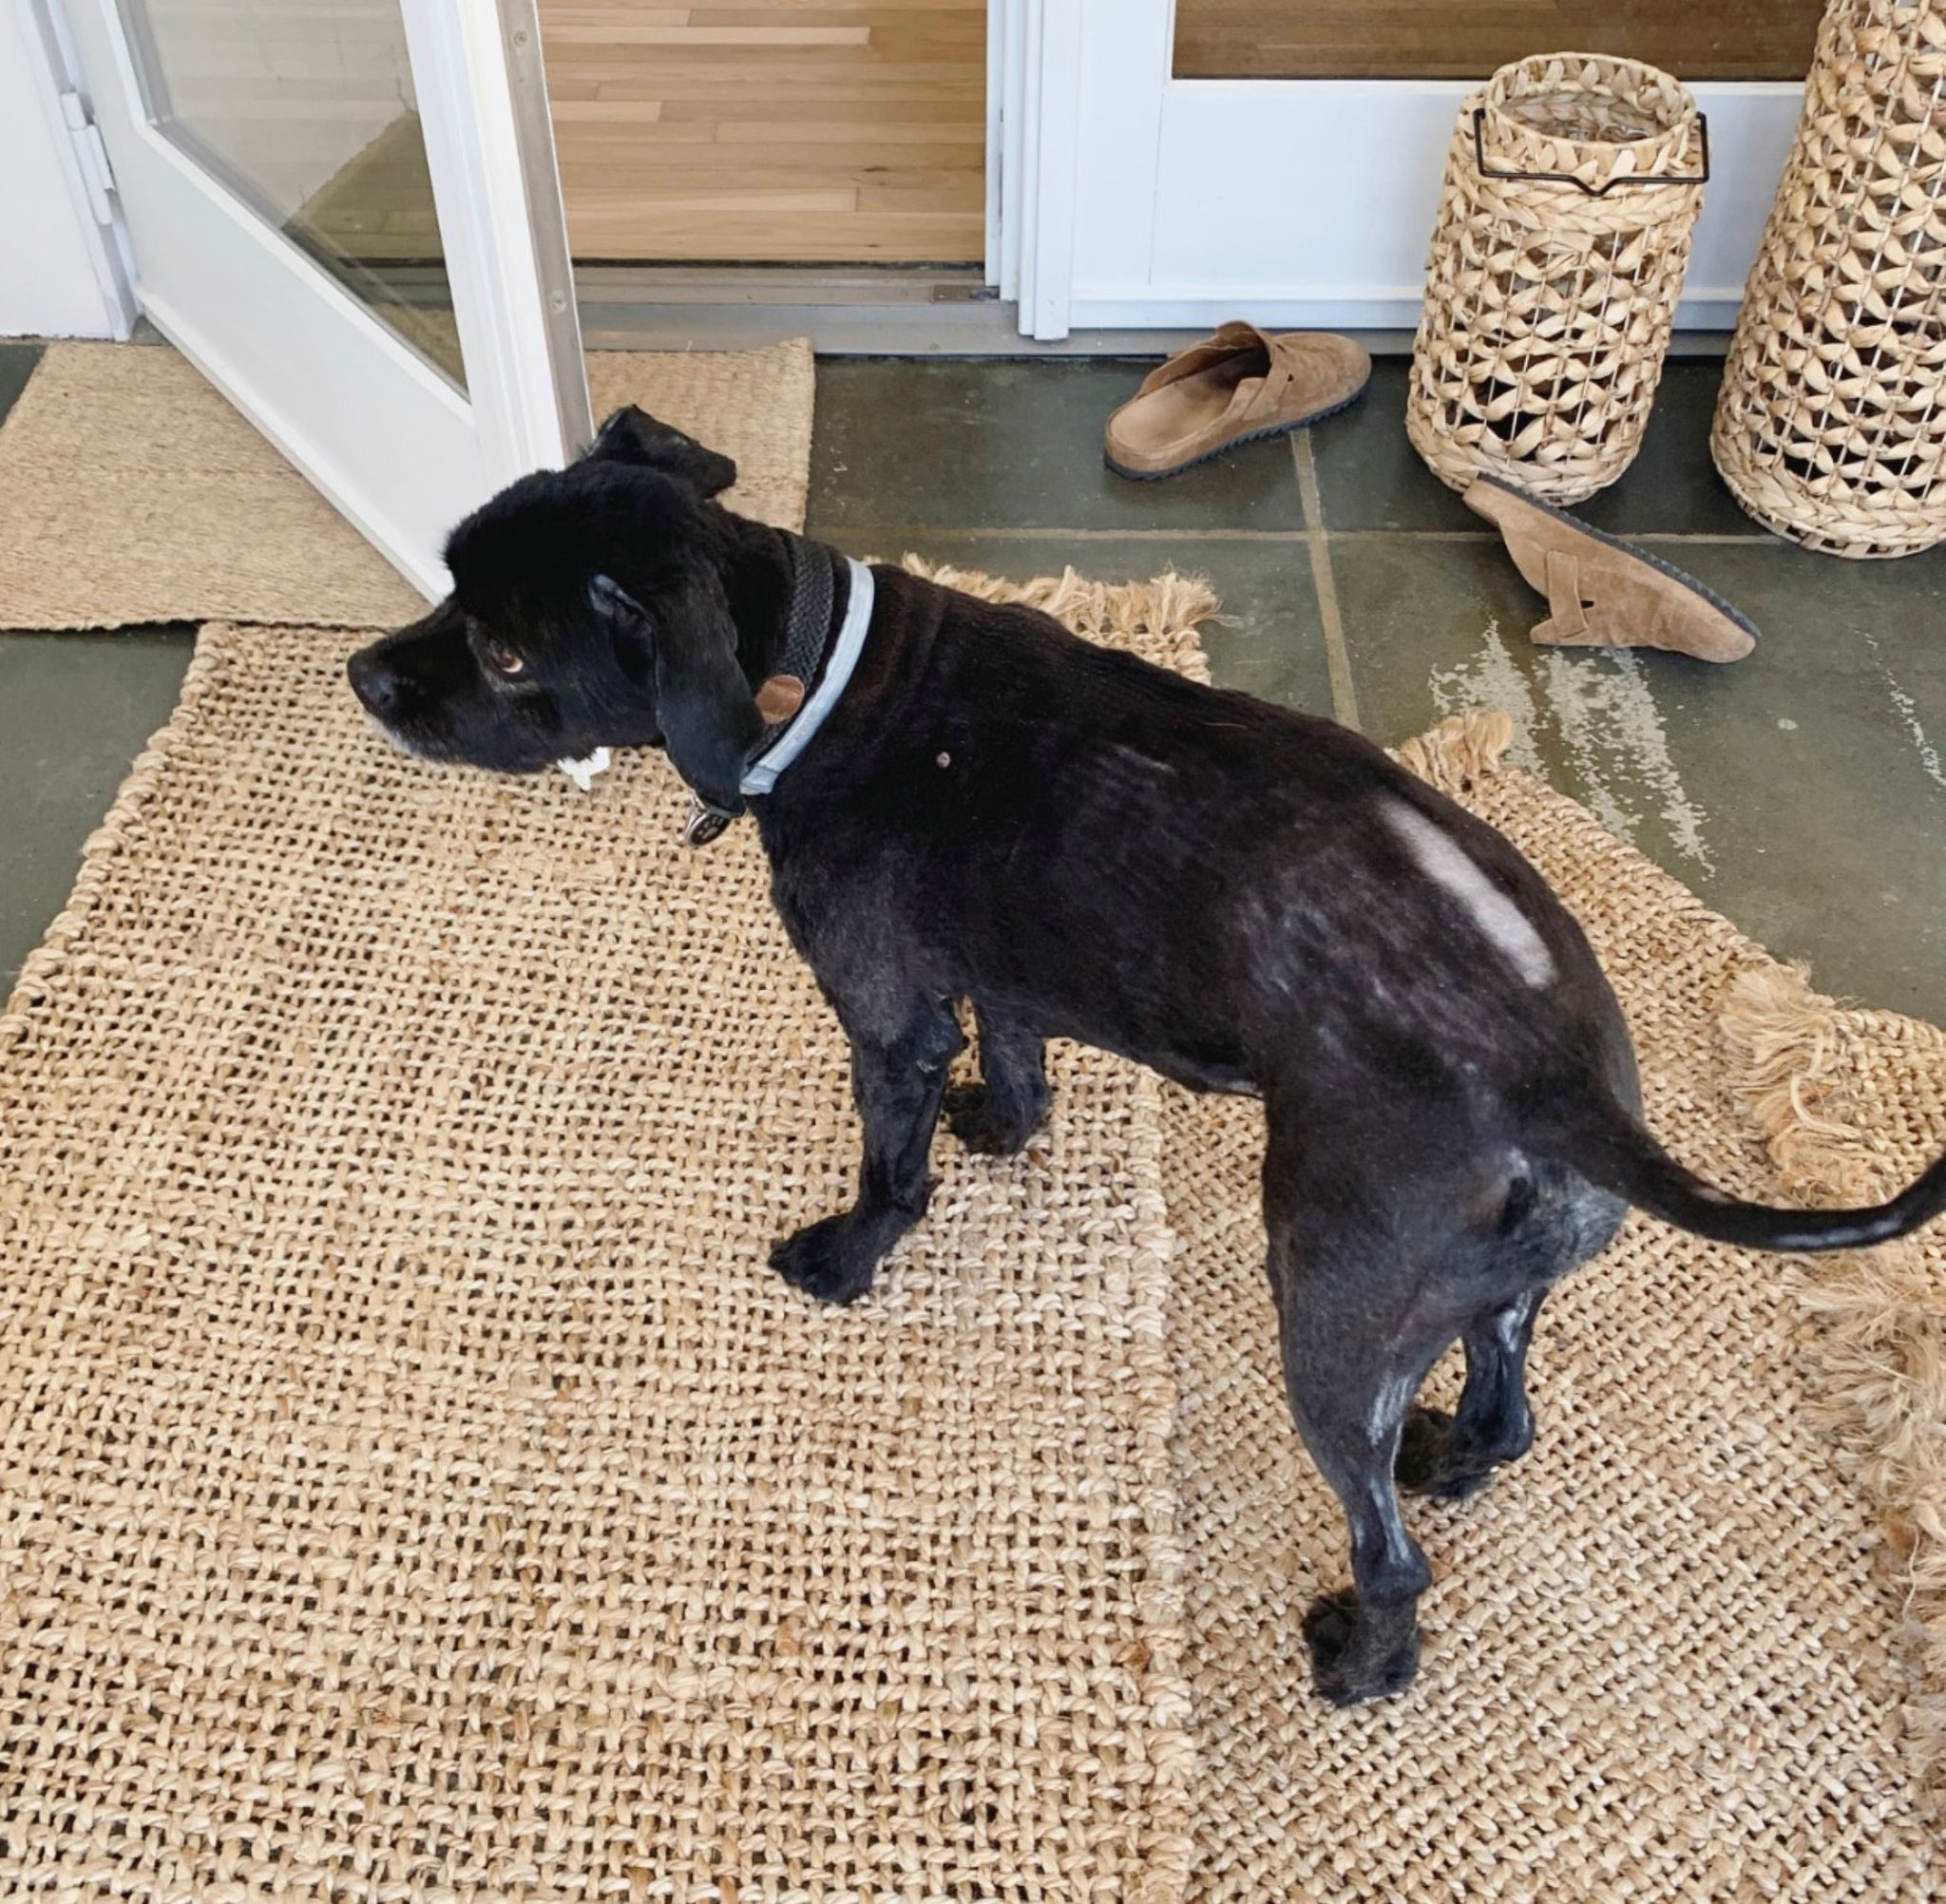 Nate Berkus On Twitter Shout Out To Dog Groomers Everywhere 1 Tucker Please Forgive Me 2 I Will Never Again Ask Why Grooming Takes So Long I M Sticking To Interior Design Moving